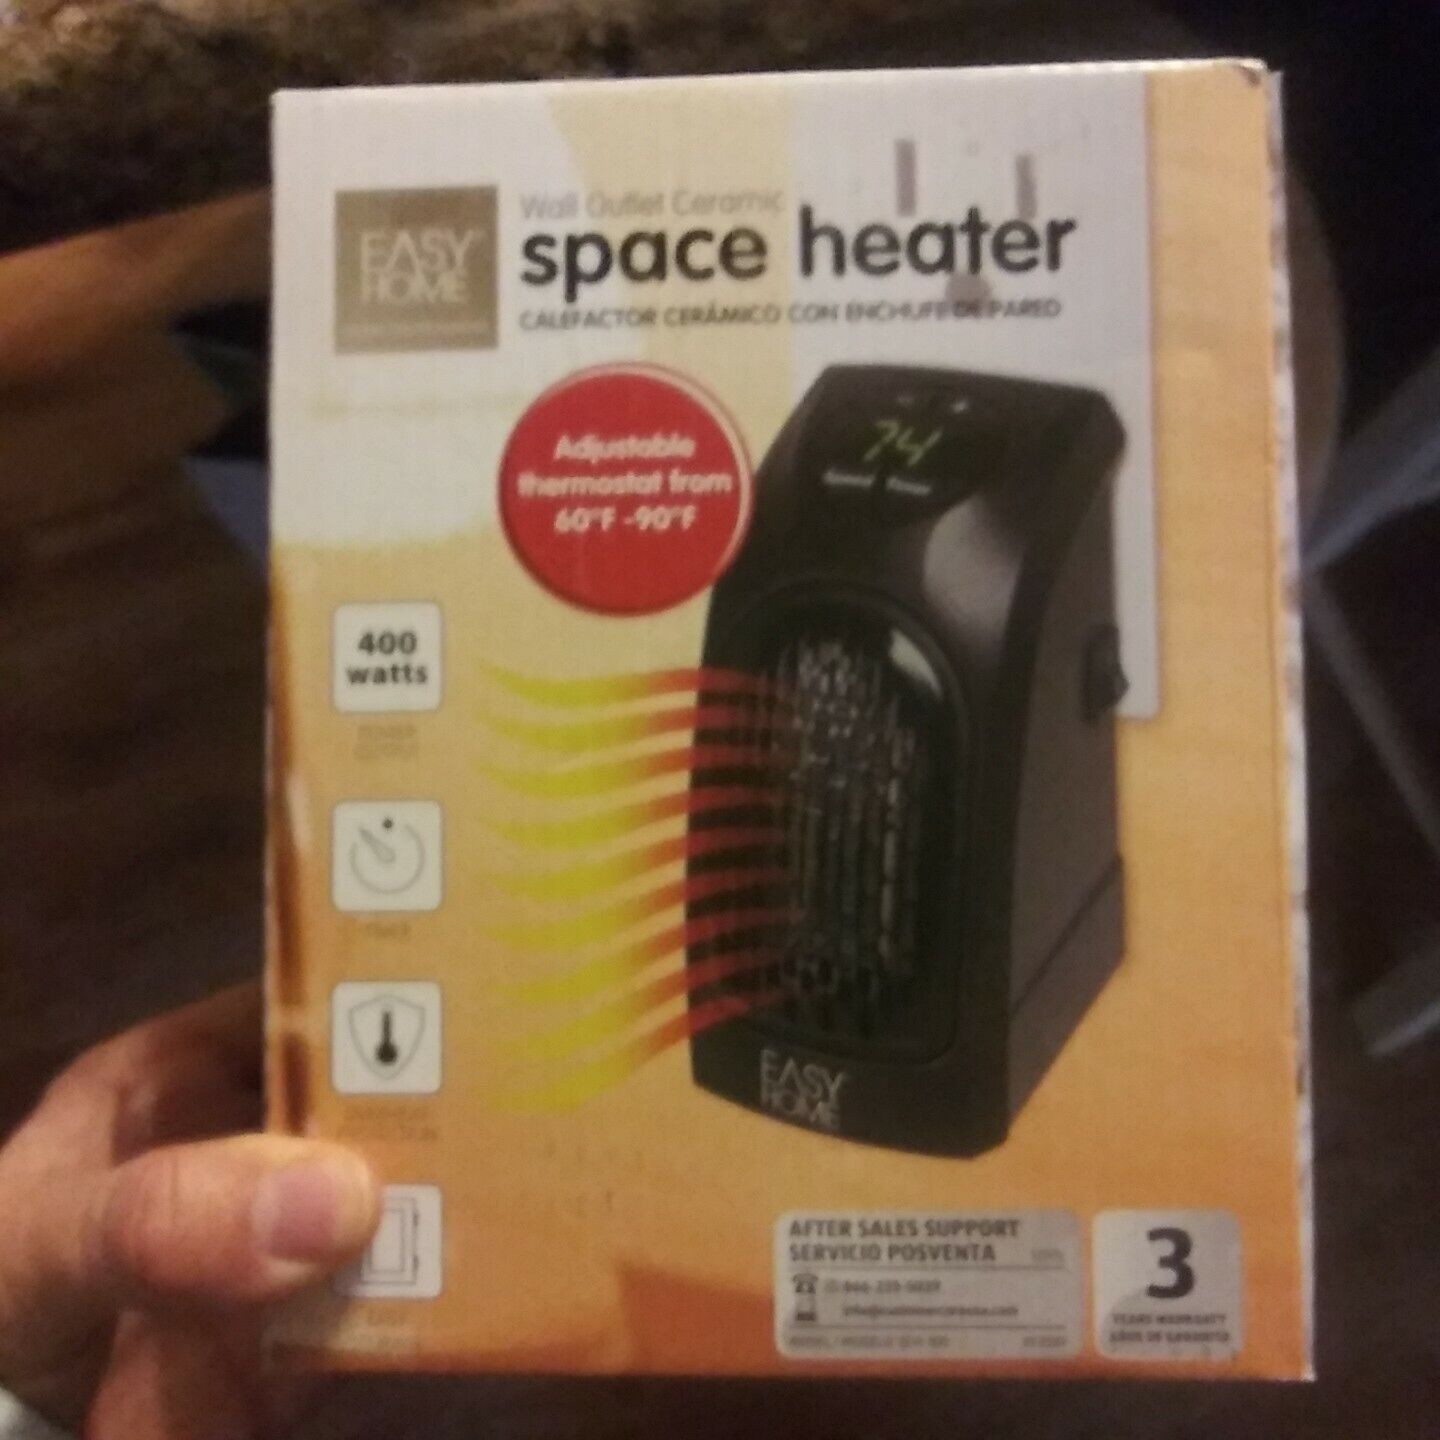 Easy Home Wall Outlet Ceramic Space Heater mini digital NEW